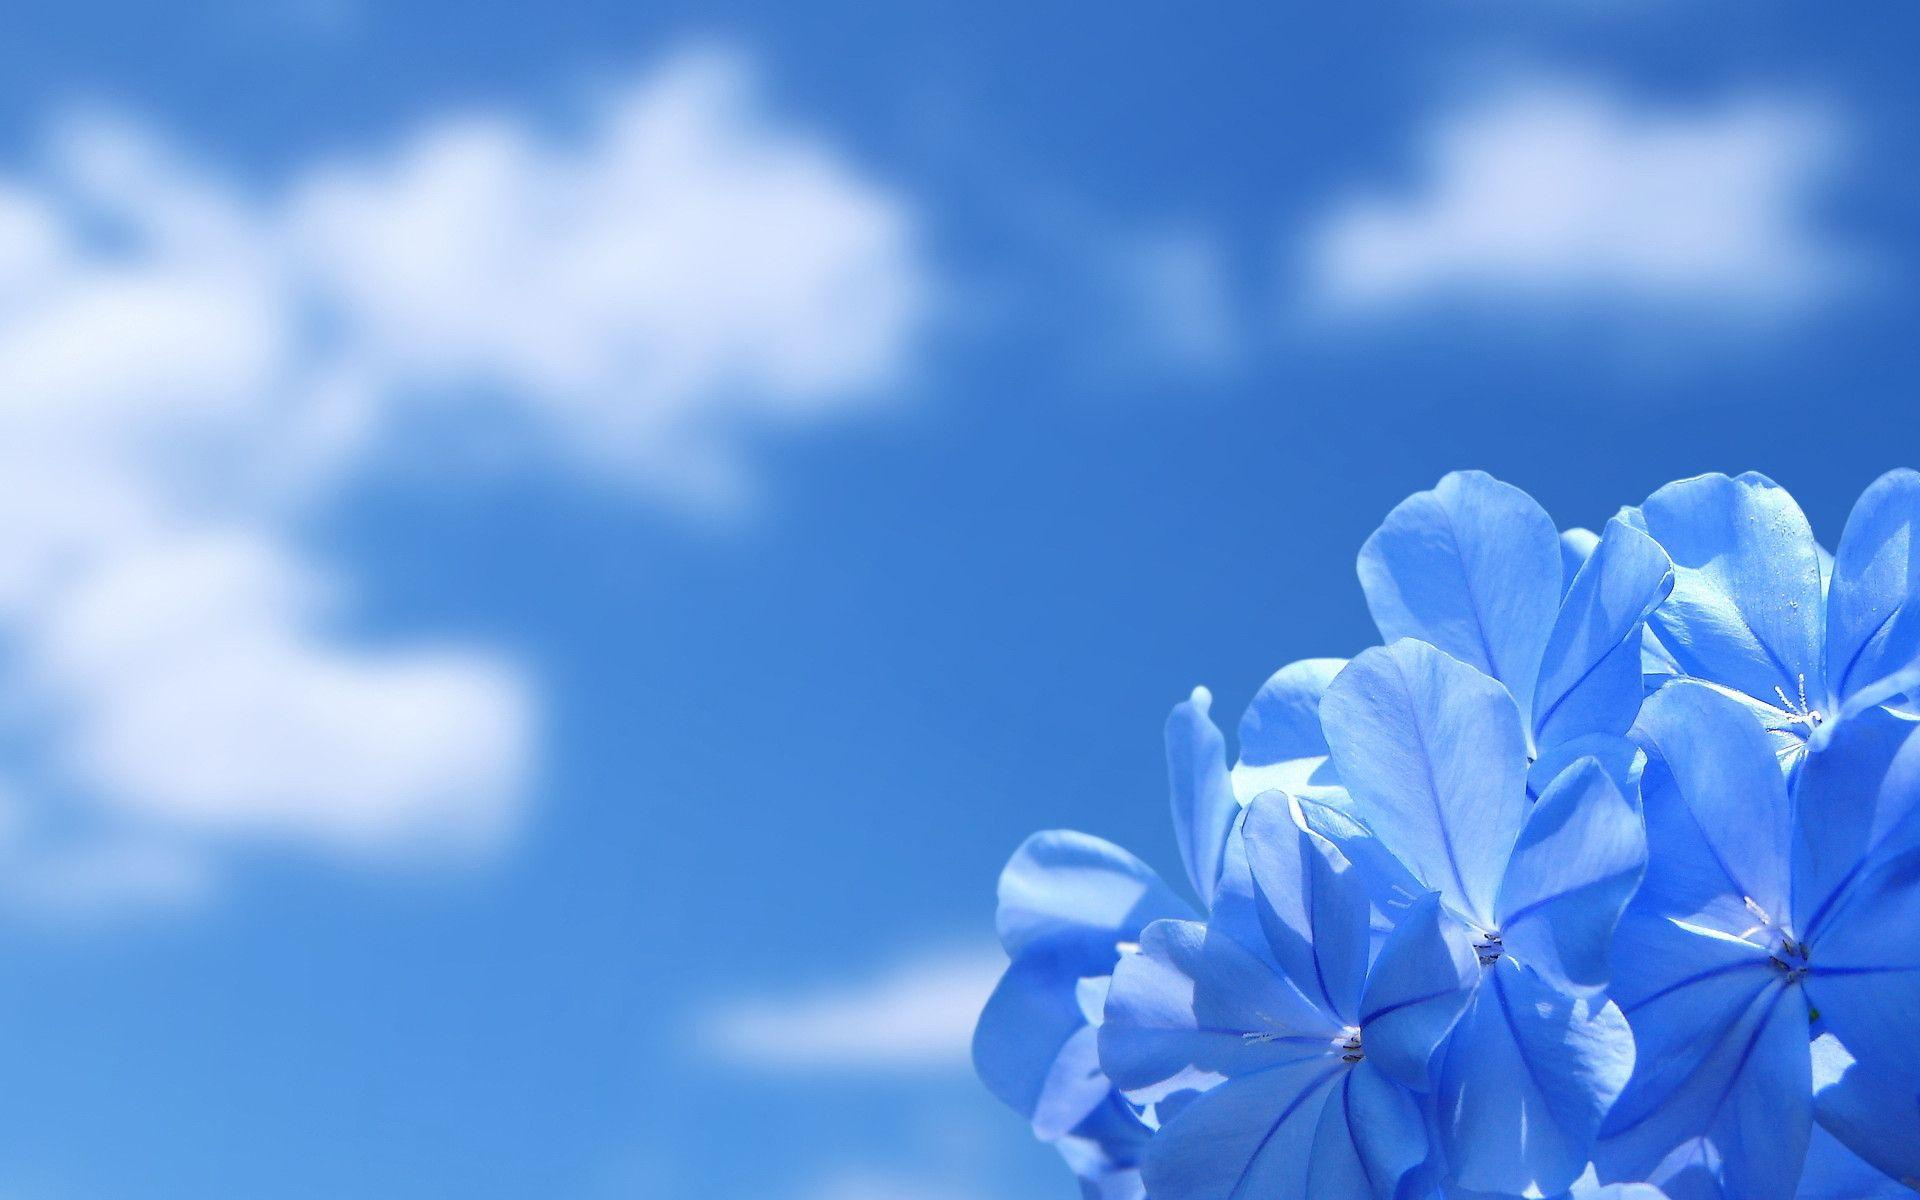 sky blue wallpapers wallpaper cave